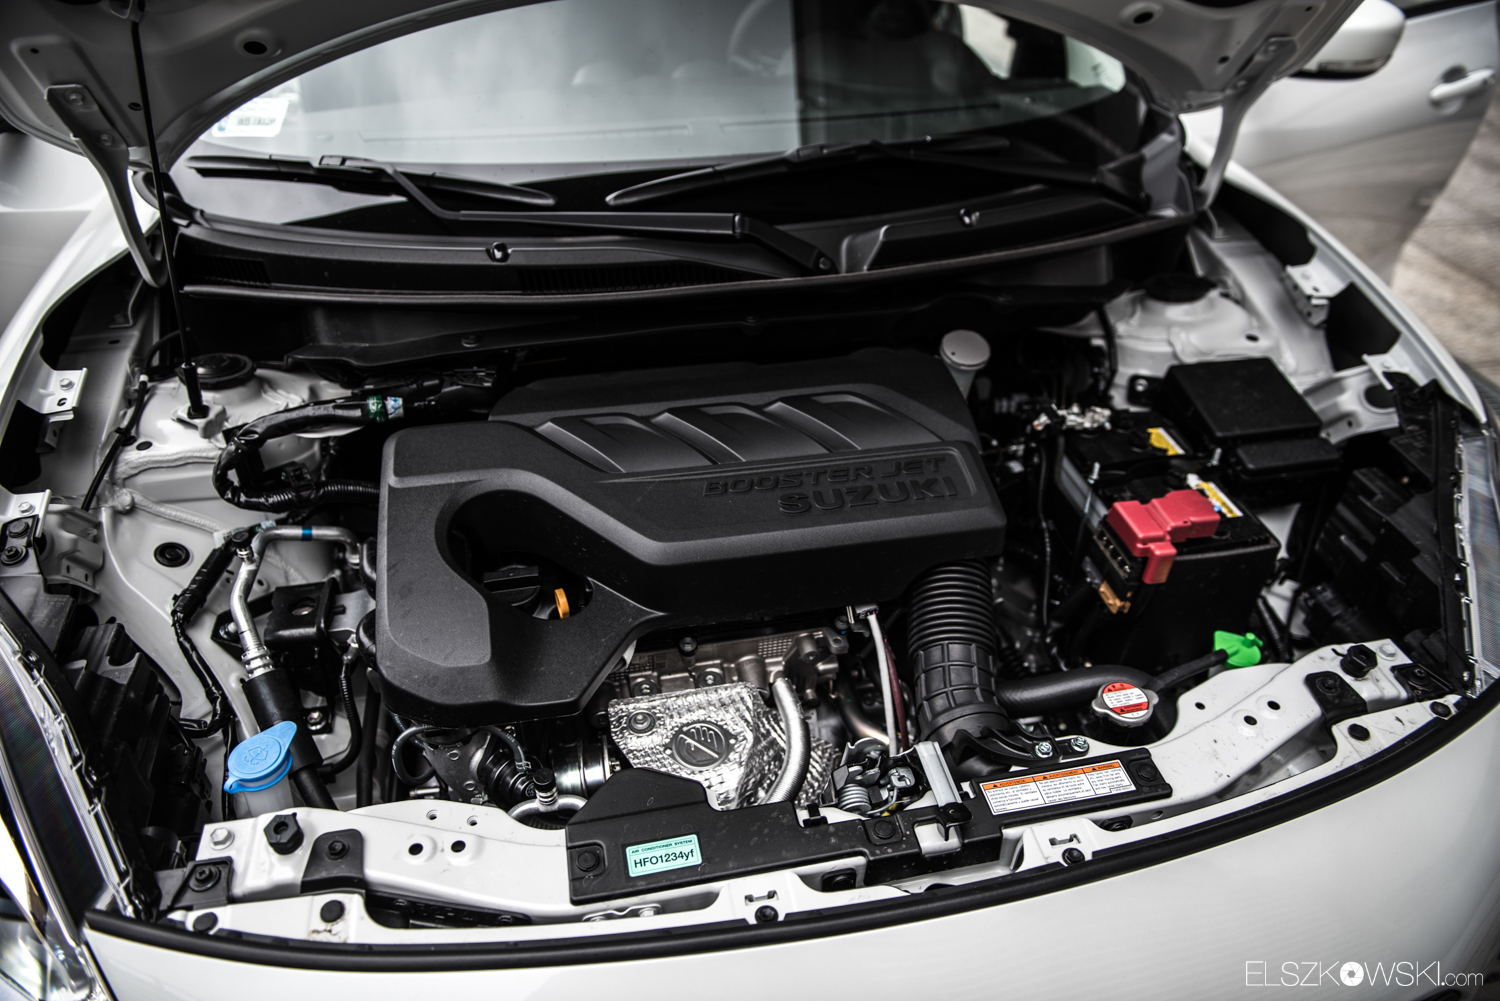 Suzuki Swift 2017 engine